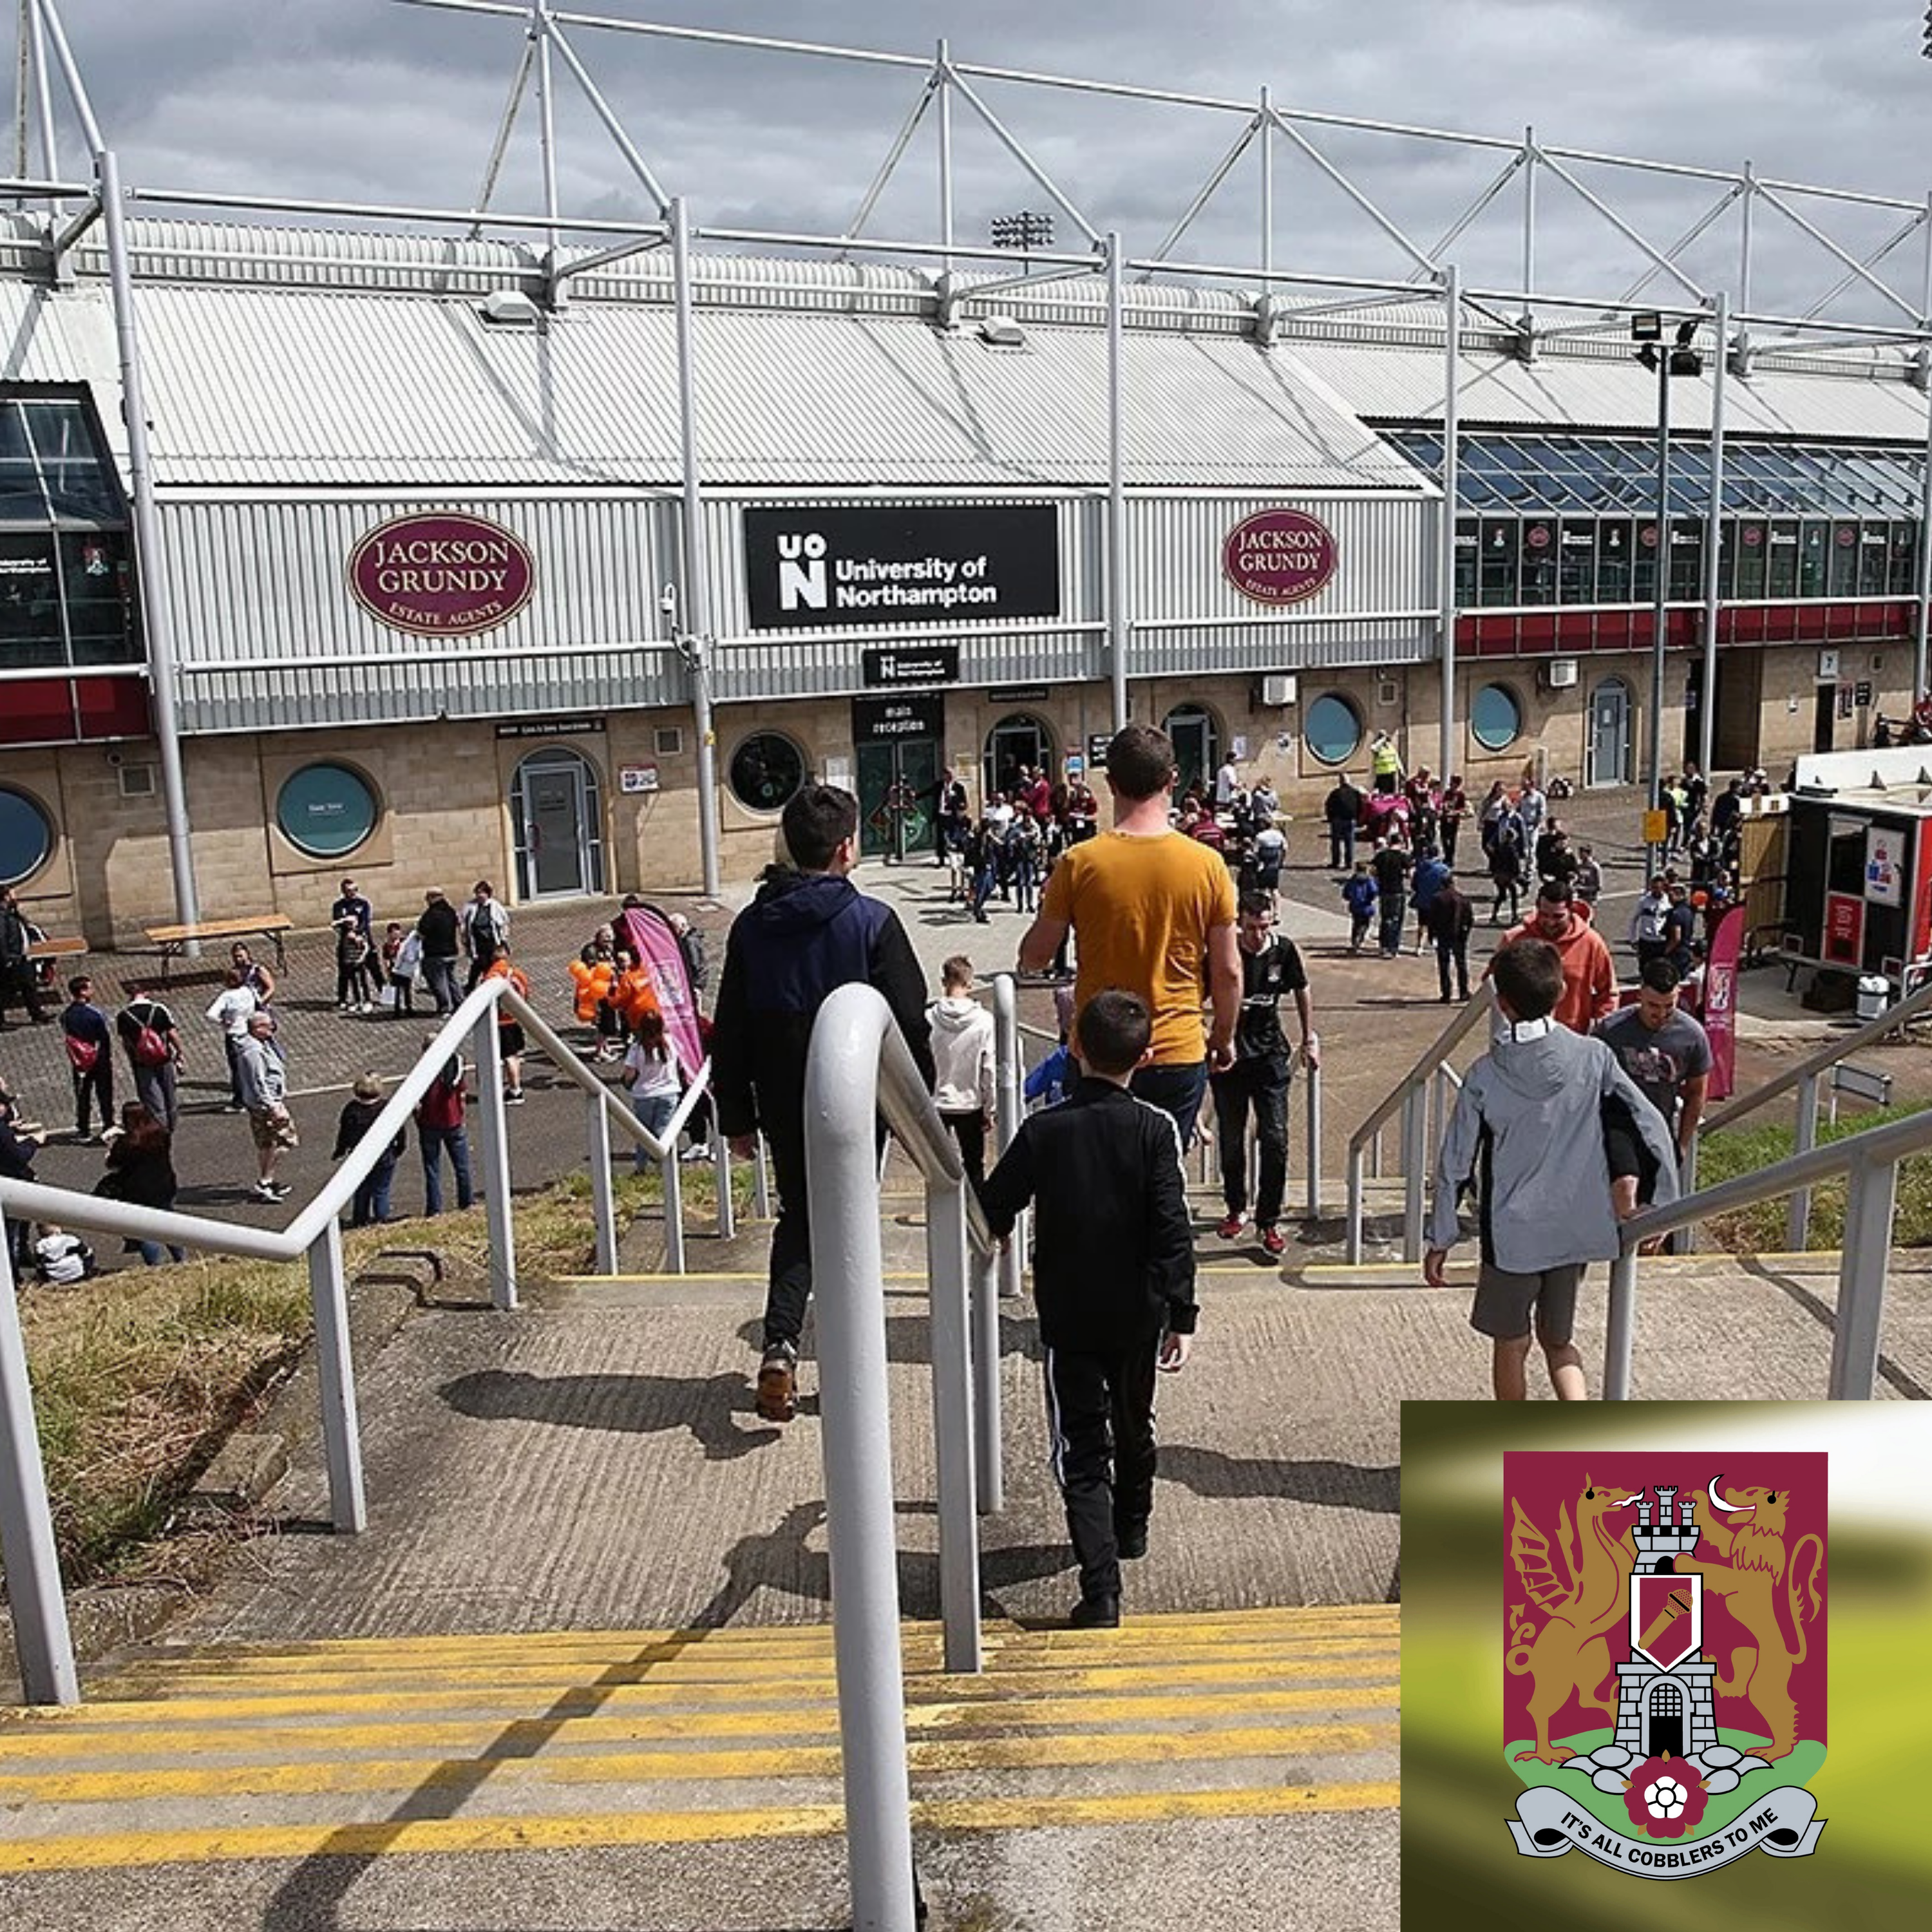 People walking down the steps in front of the main stand at Sixfields Stadium, Northampton. Podcast logo in bottom right corner